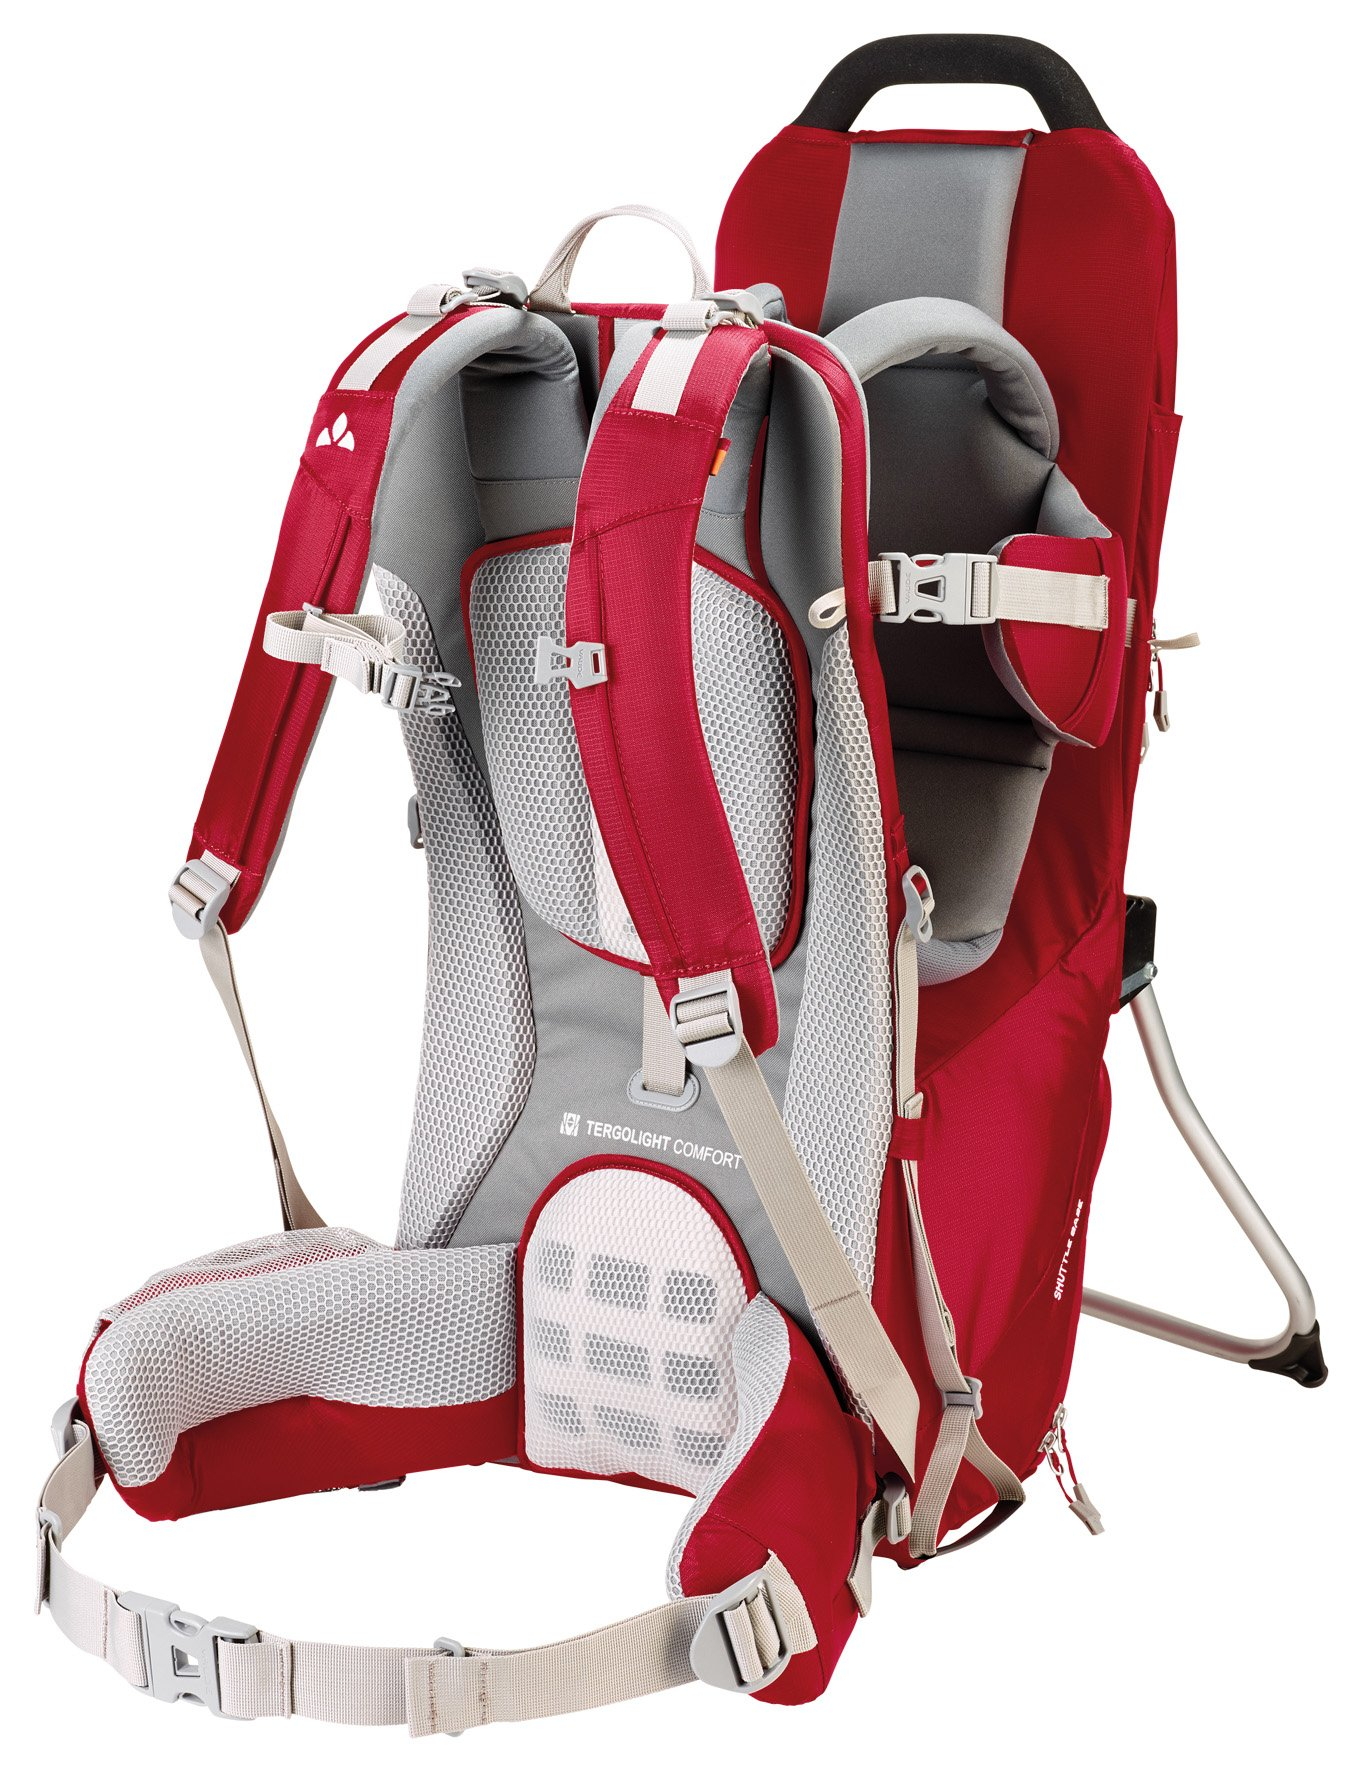 Vaude Shuttle Base Child Carrier Vaude Individually adjustable supportive back Padded hip belt with pocket. The Shuttle Base can safely carry children up to 105 cm or 18 kg Adjustable seat height. Maximum age: 3 years 2